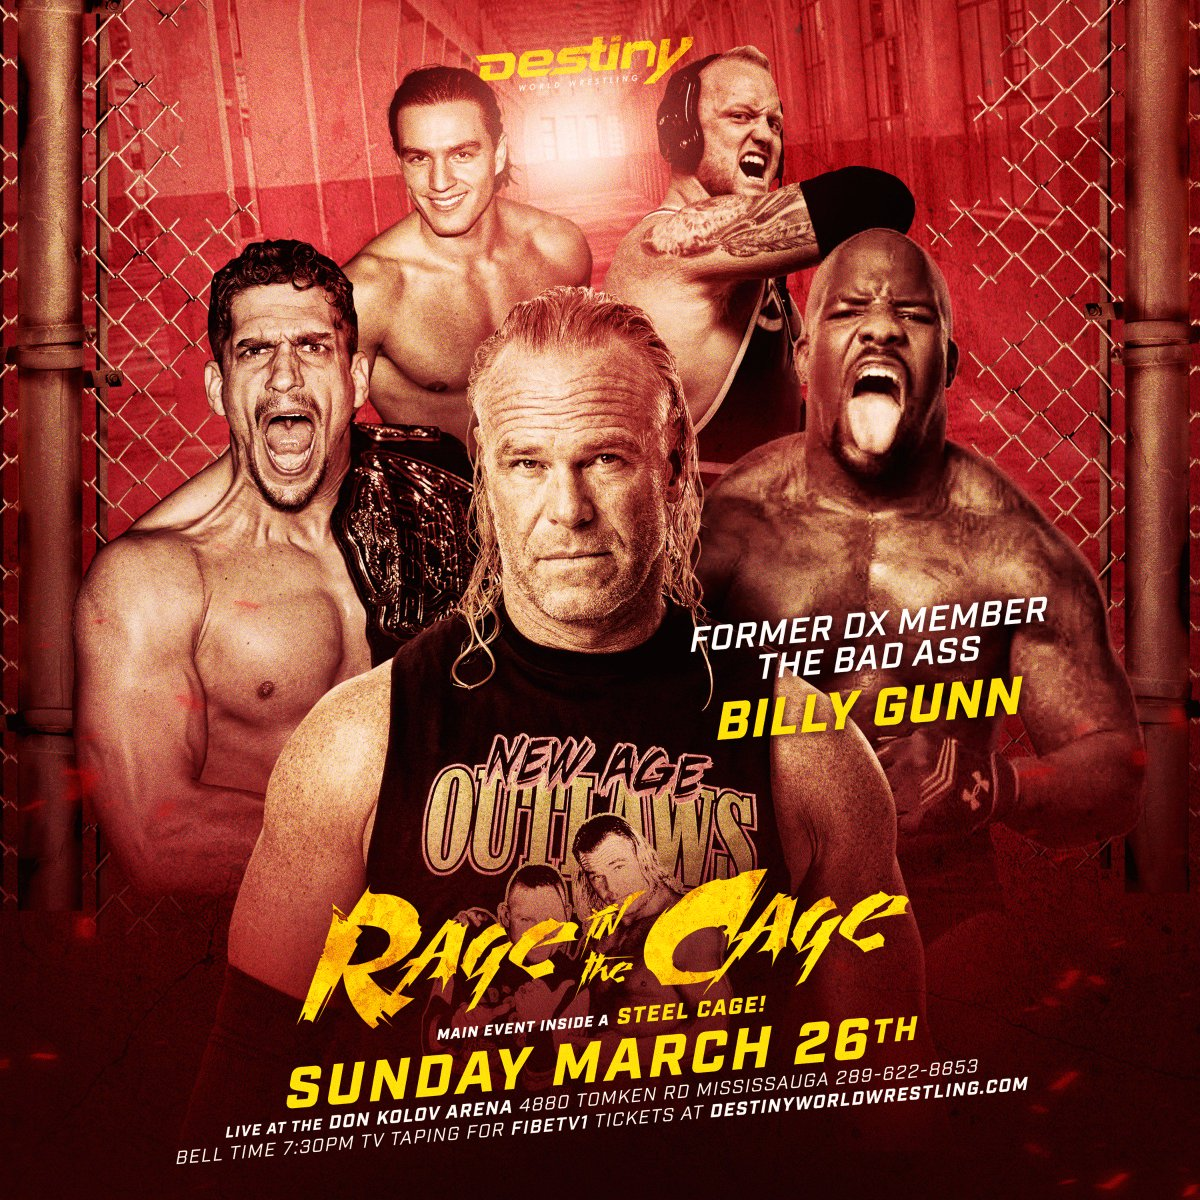 RealBillyGunn photo